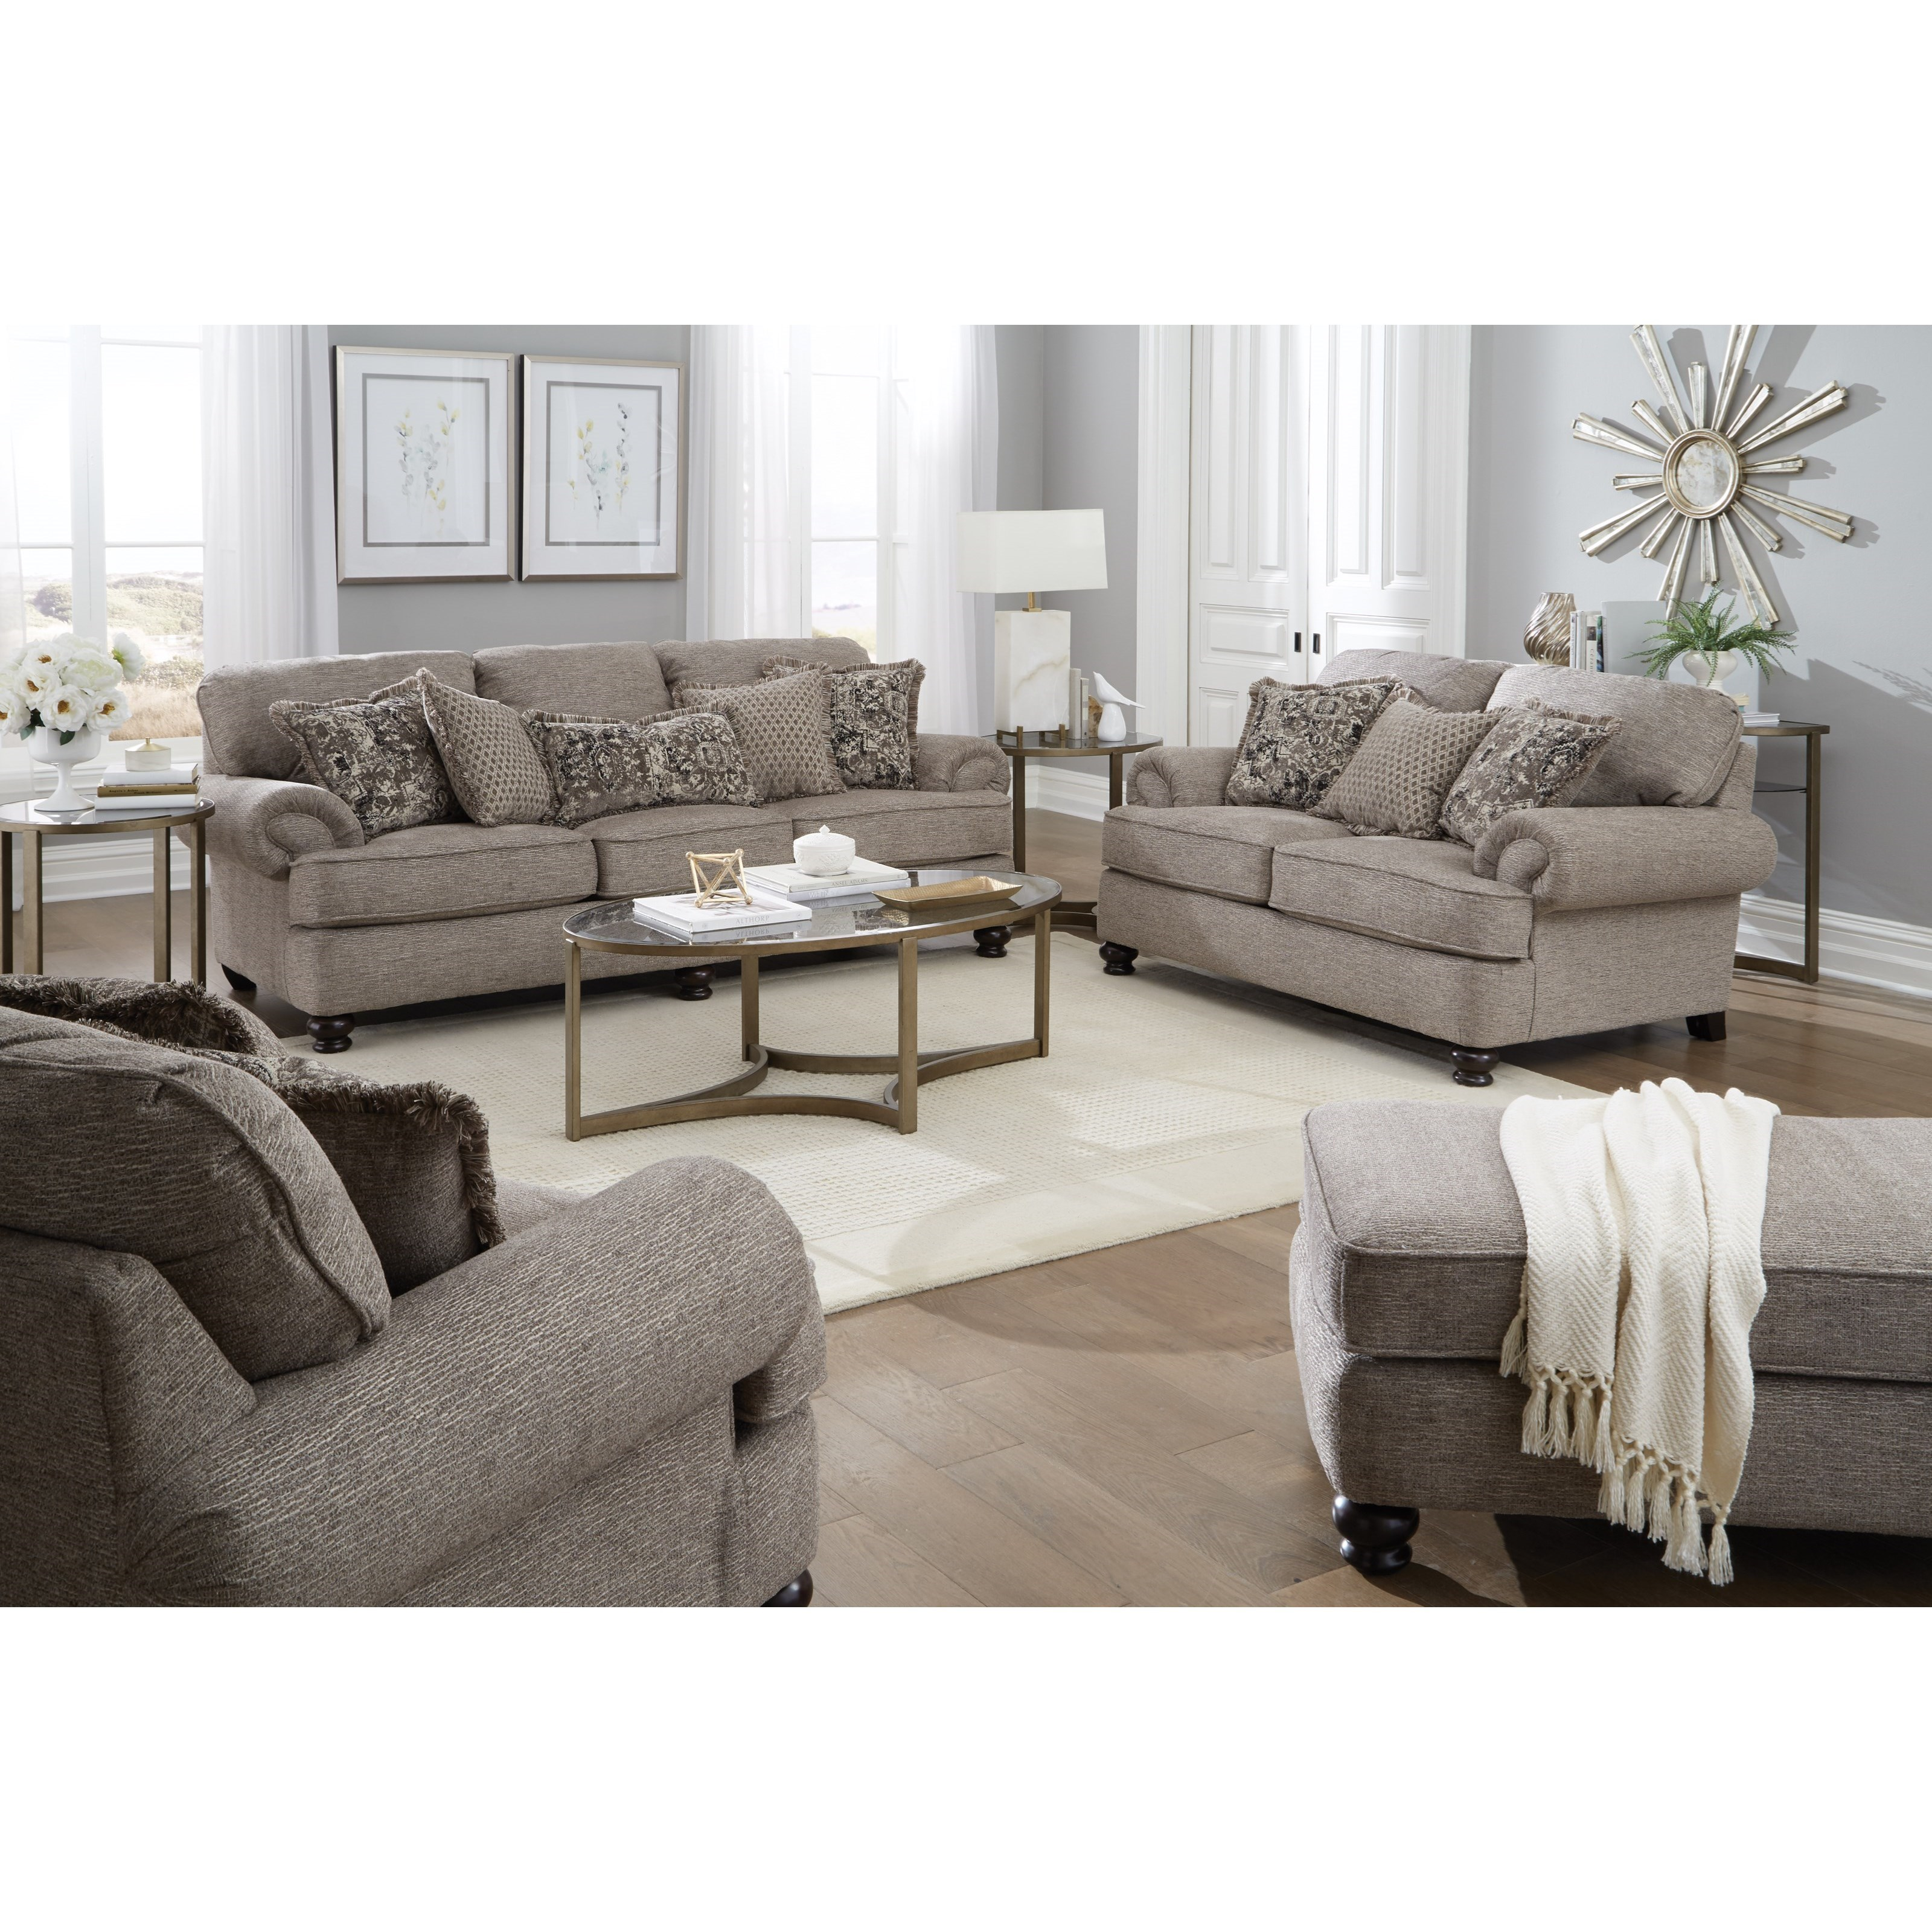 Frisco Living Room Group Jackson Frisco by Jackson Furniture at Crowley Furniture & Mattress